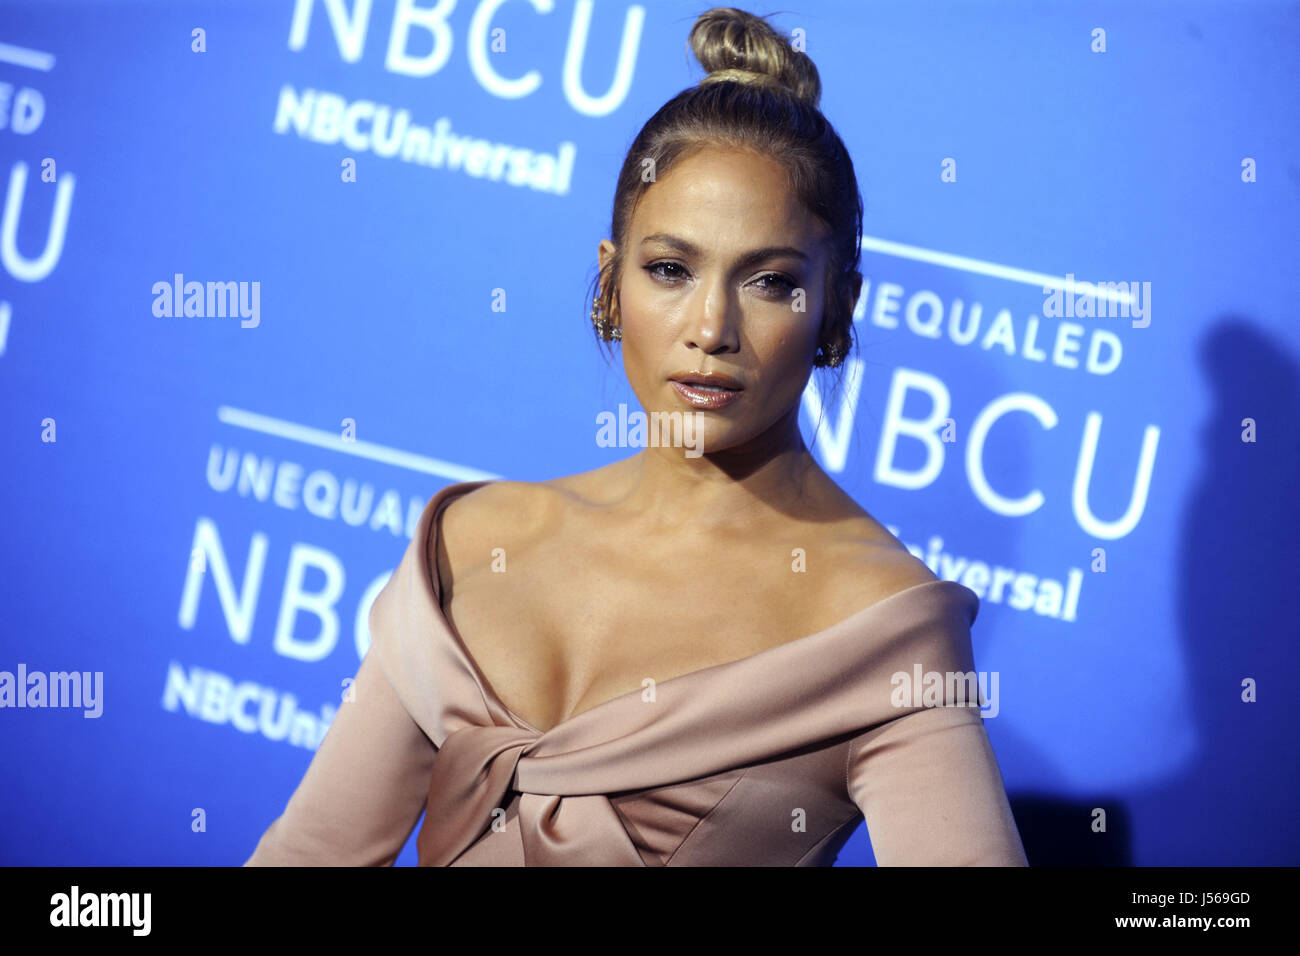 Jennifer Lopez attends the 2017 NBCUniversal Upfront at Radio City Music Hall on May 15, 2017 in New York City. - Stock Image